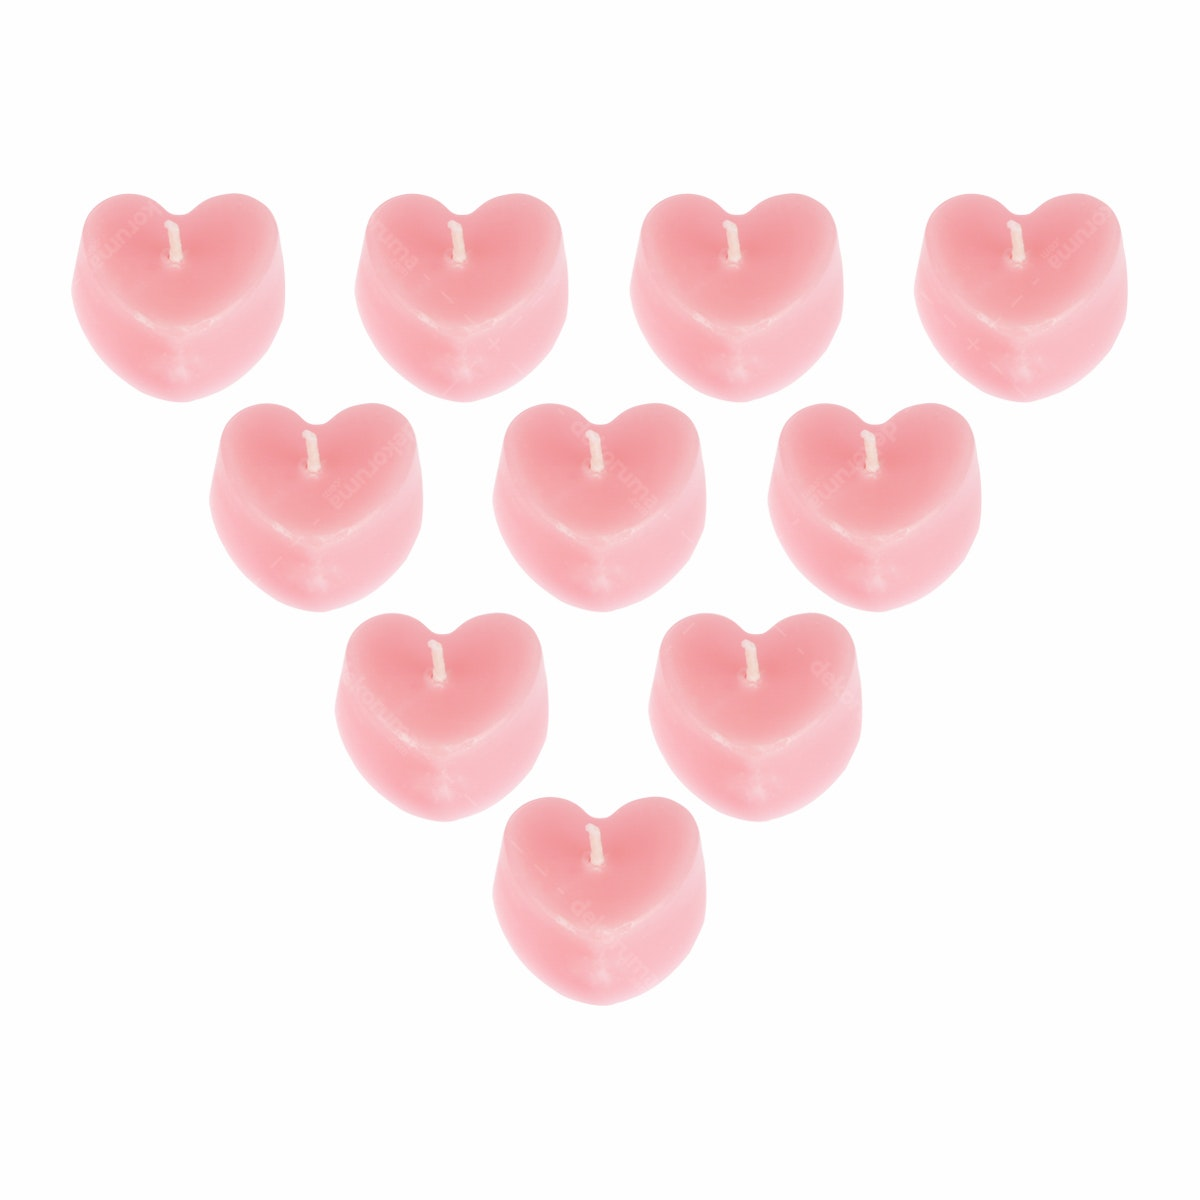 Ajindo Lilin Tealight Love Merah Muda (10pcs)